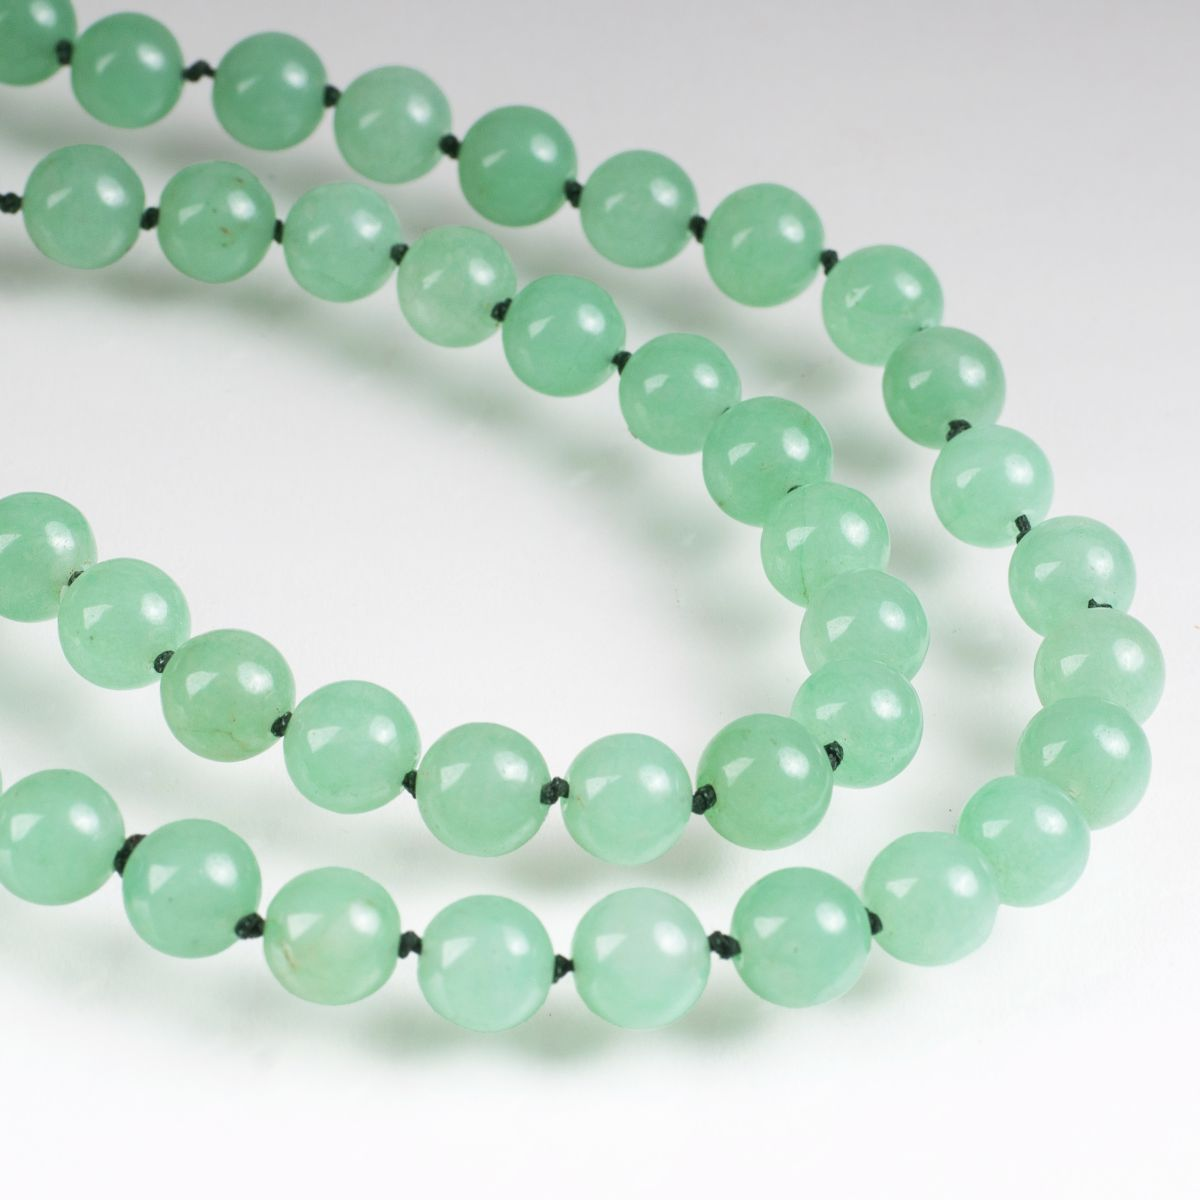 A long jade green quartz necklace